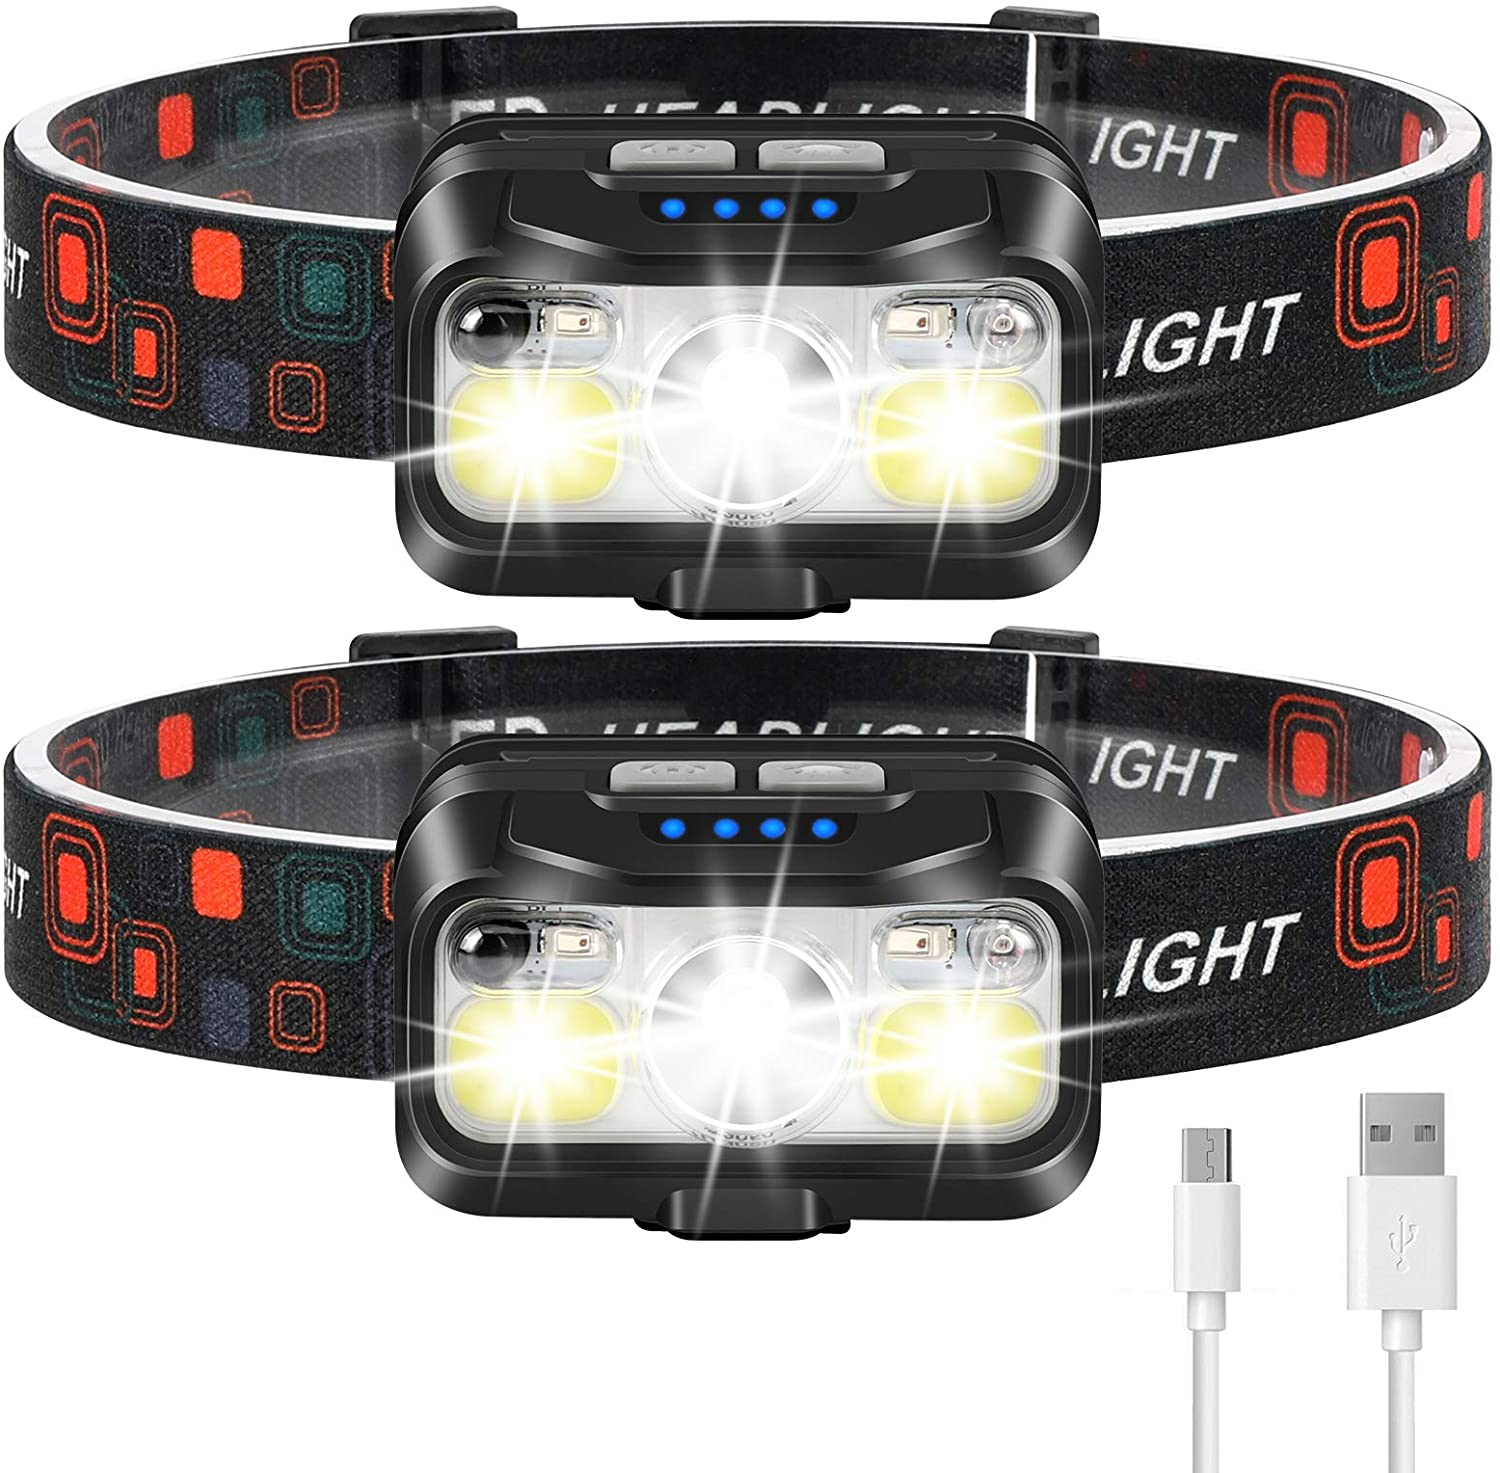 LHKNL Rechargeable Headlamp, two pairs